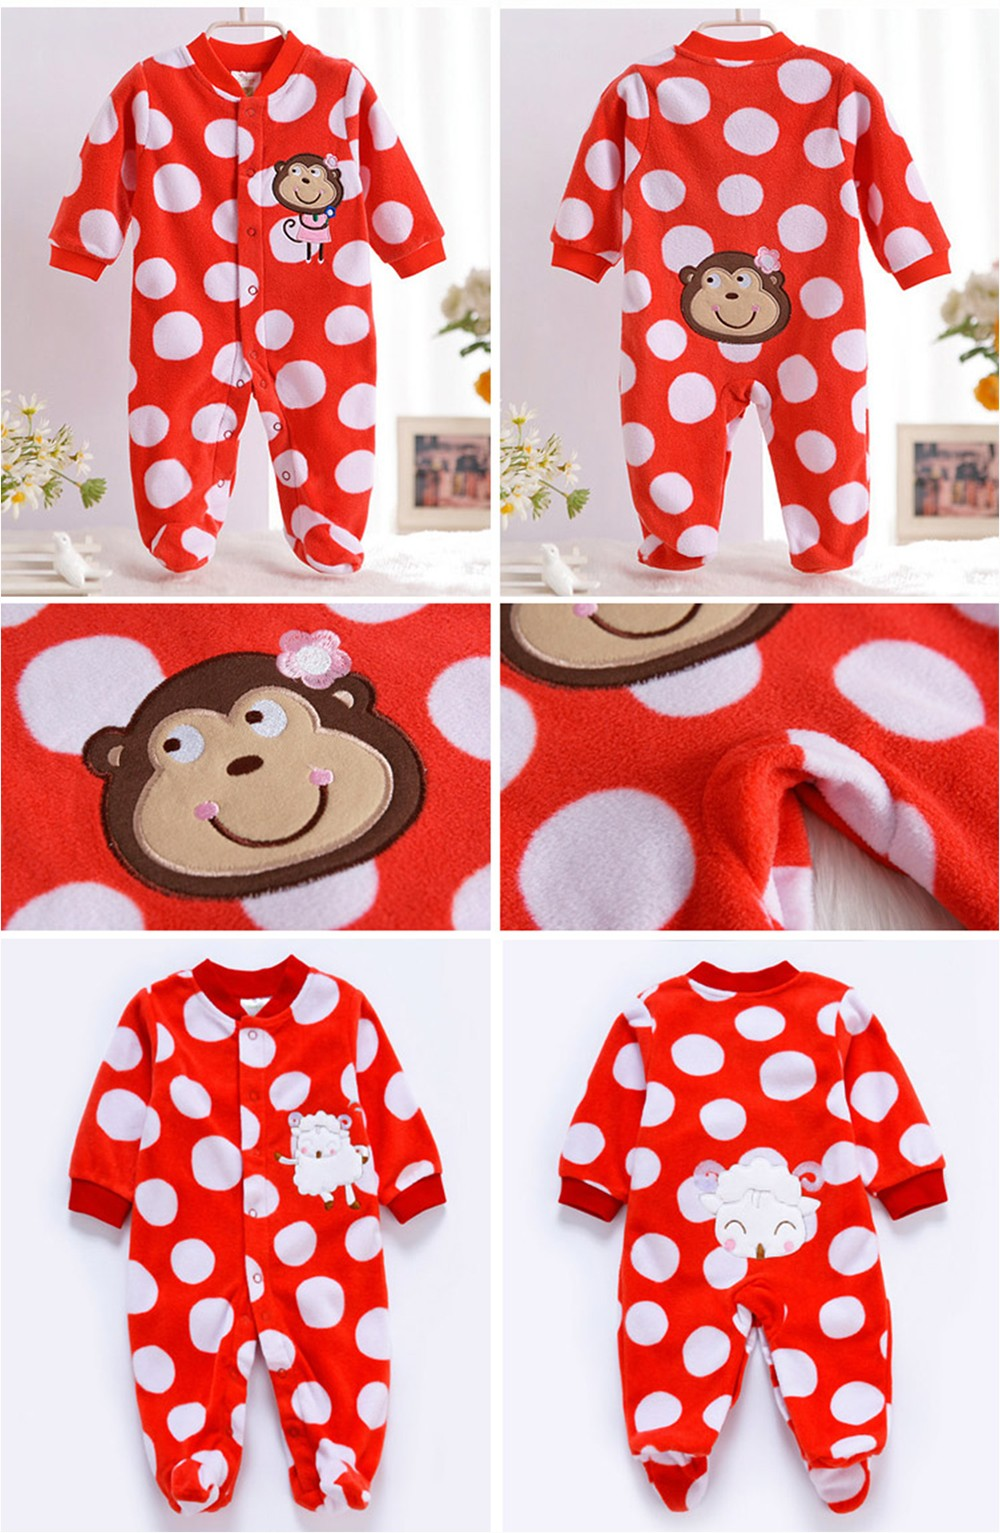 2016-Autumn-Spring-Wave-Point-Baby-Fleece-Pajamas-Rompers-One-Pieces-Long-Sleeve-Jumpsuit-Cute-Animal-Baby-Sleep&Play-Clothes-CL0886 (9)